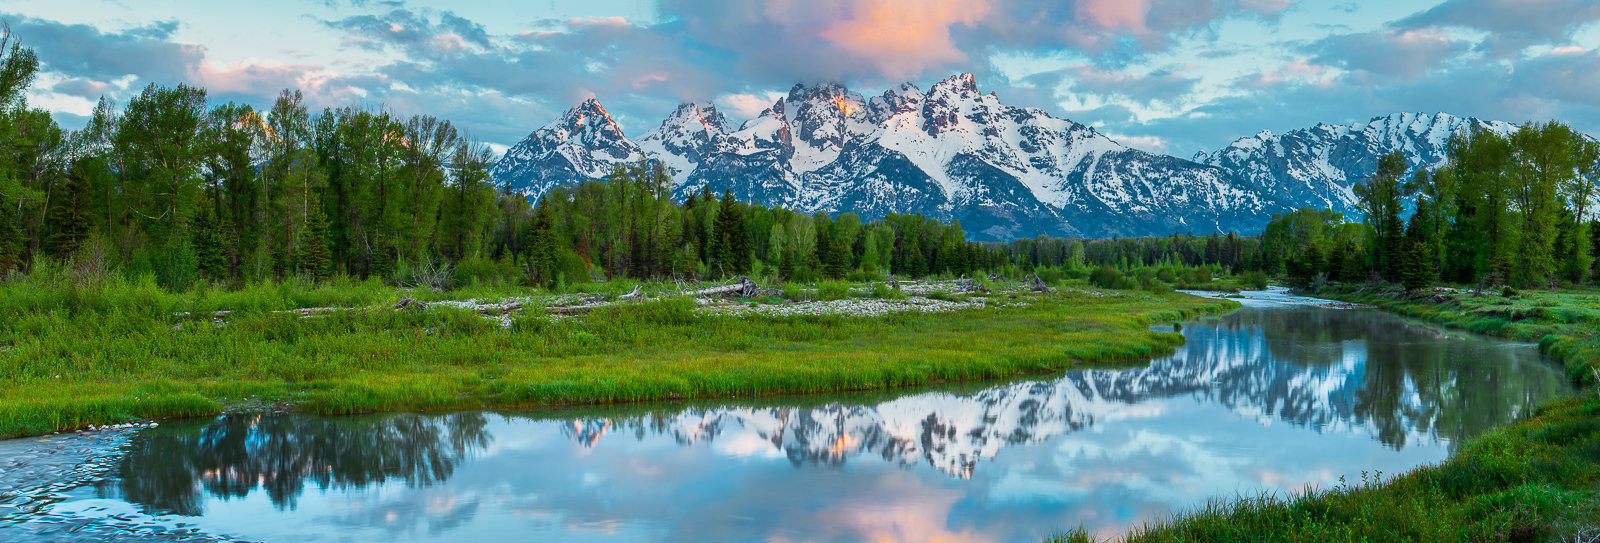 Touched by the Morning Sun,Grand Teton National Park, Wyoming, panoramic,water,green,river,reflection, photo